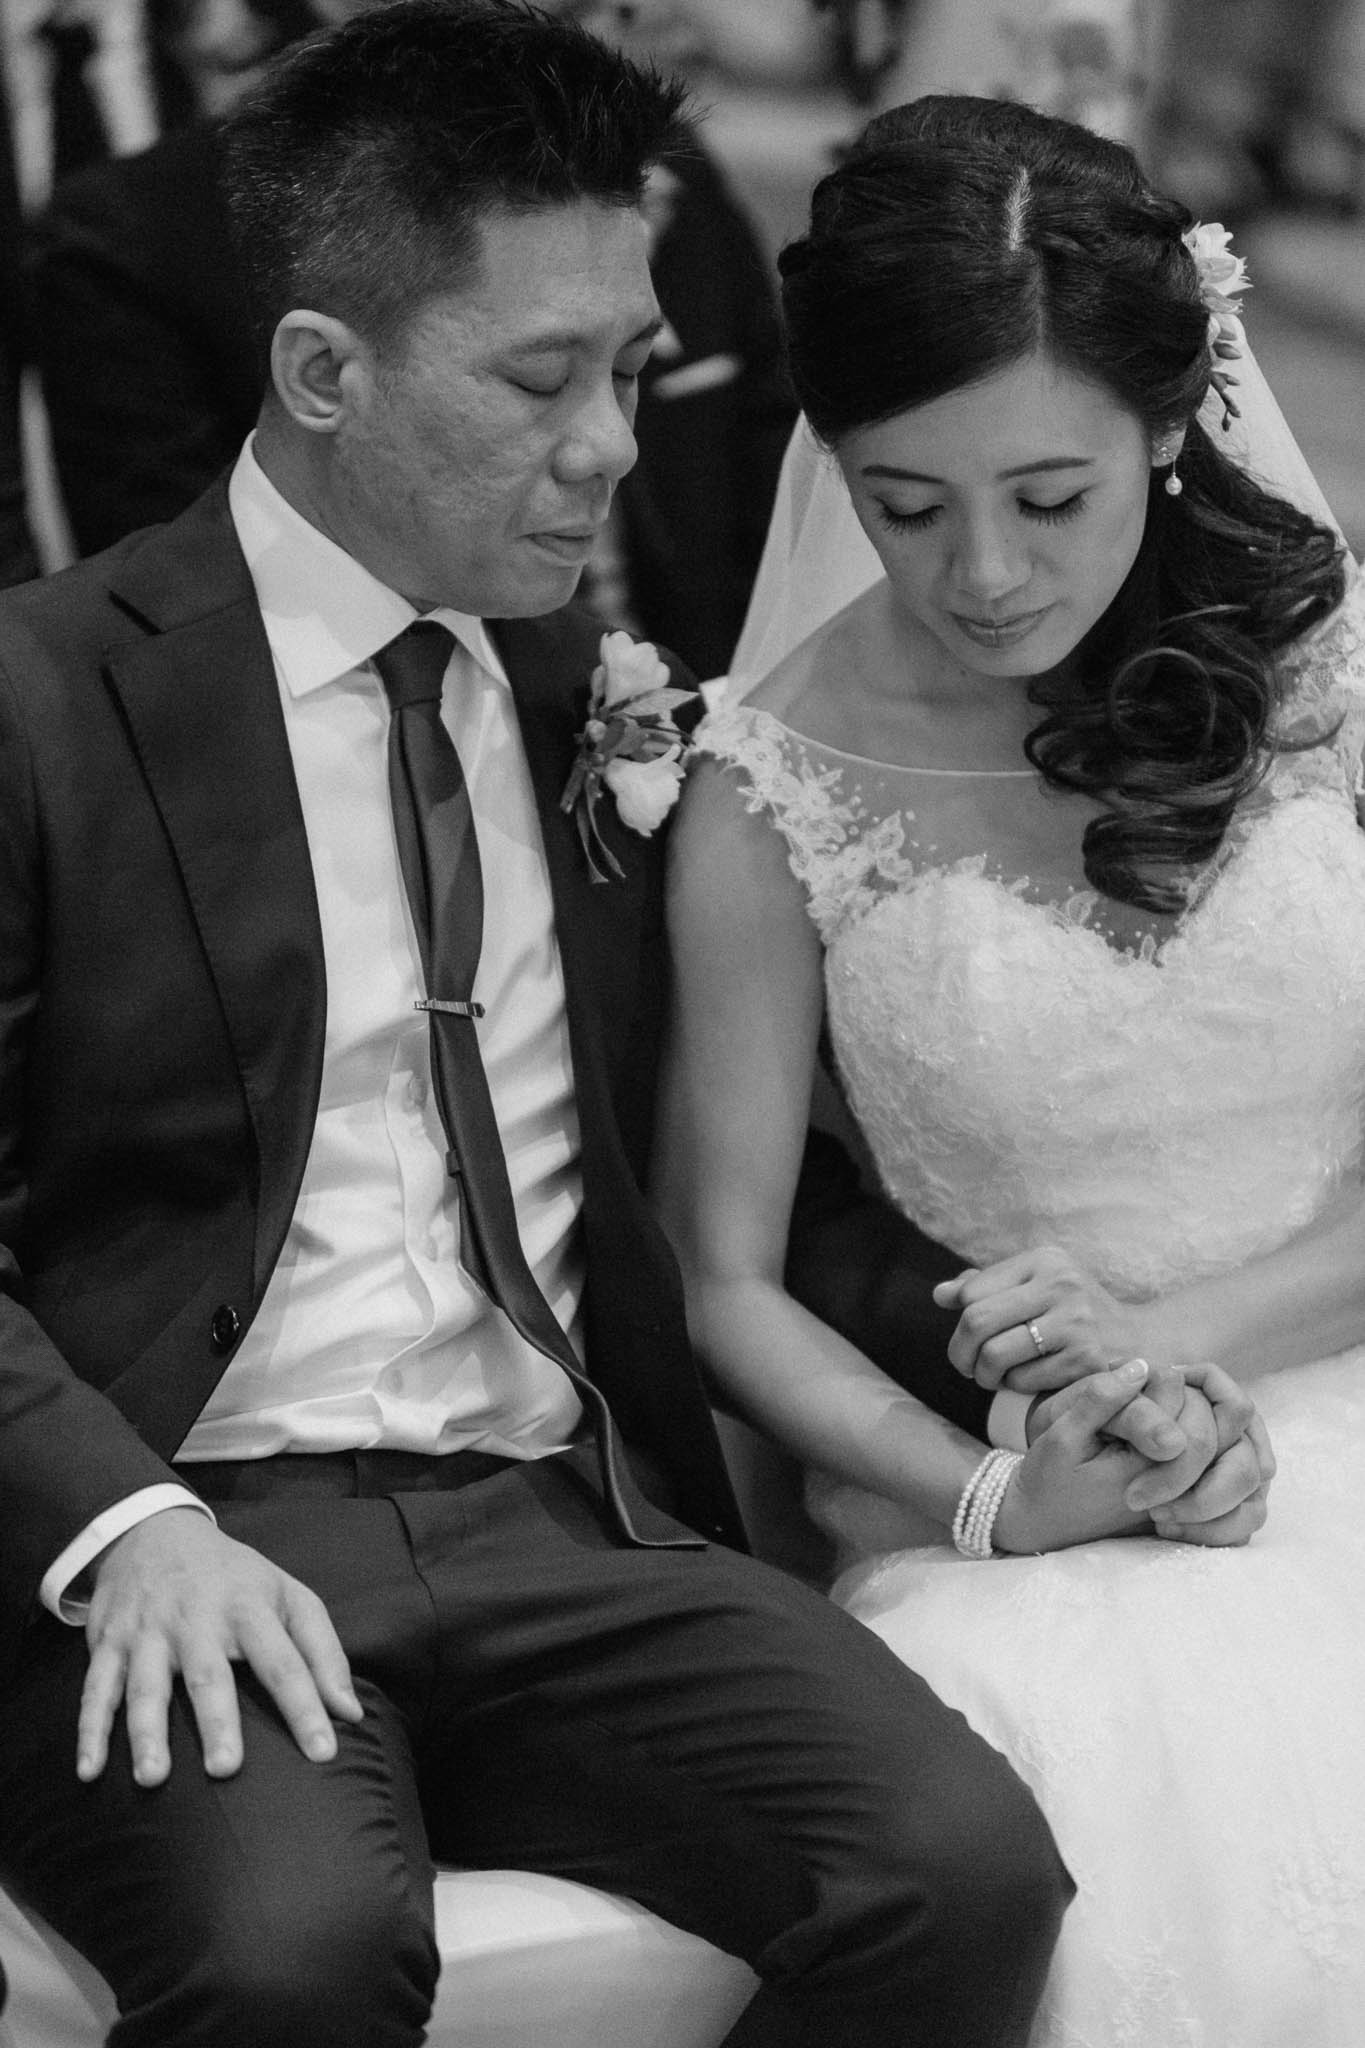 singapore-wedding-photographer-we-made-these-2016-selects-100.jpg